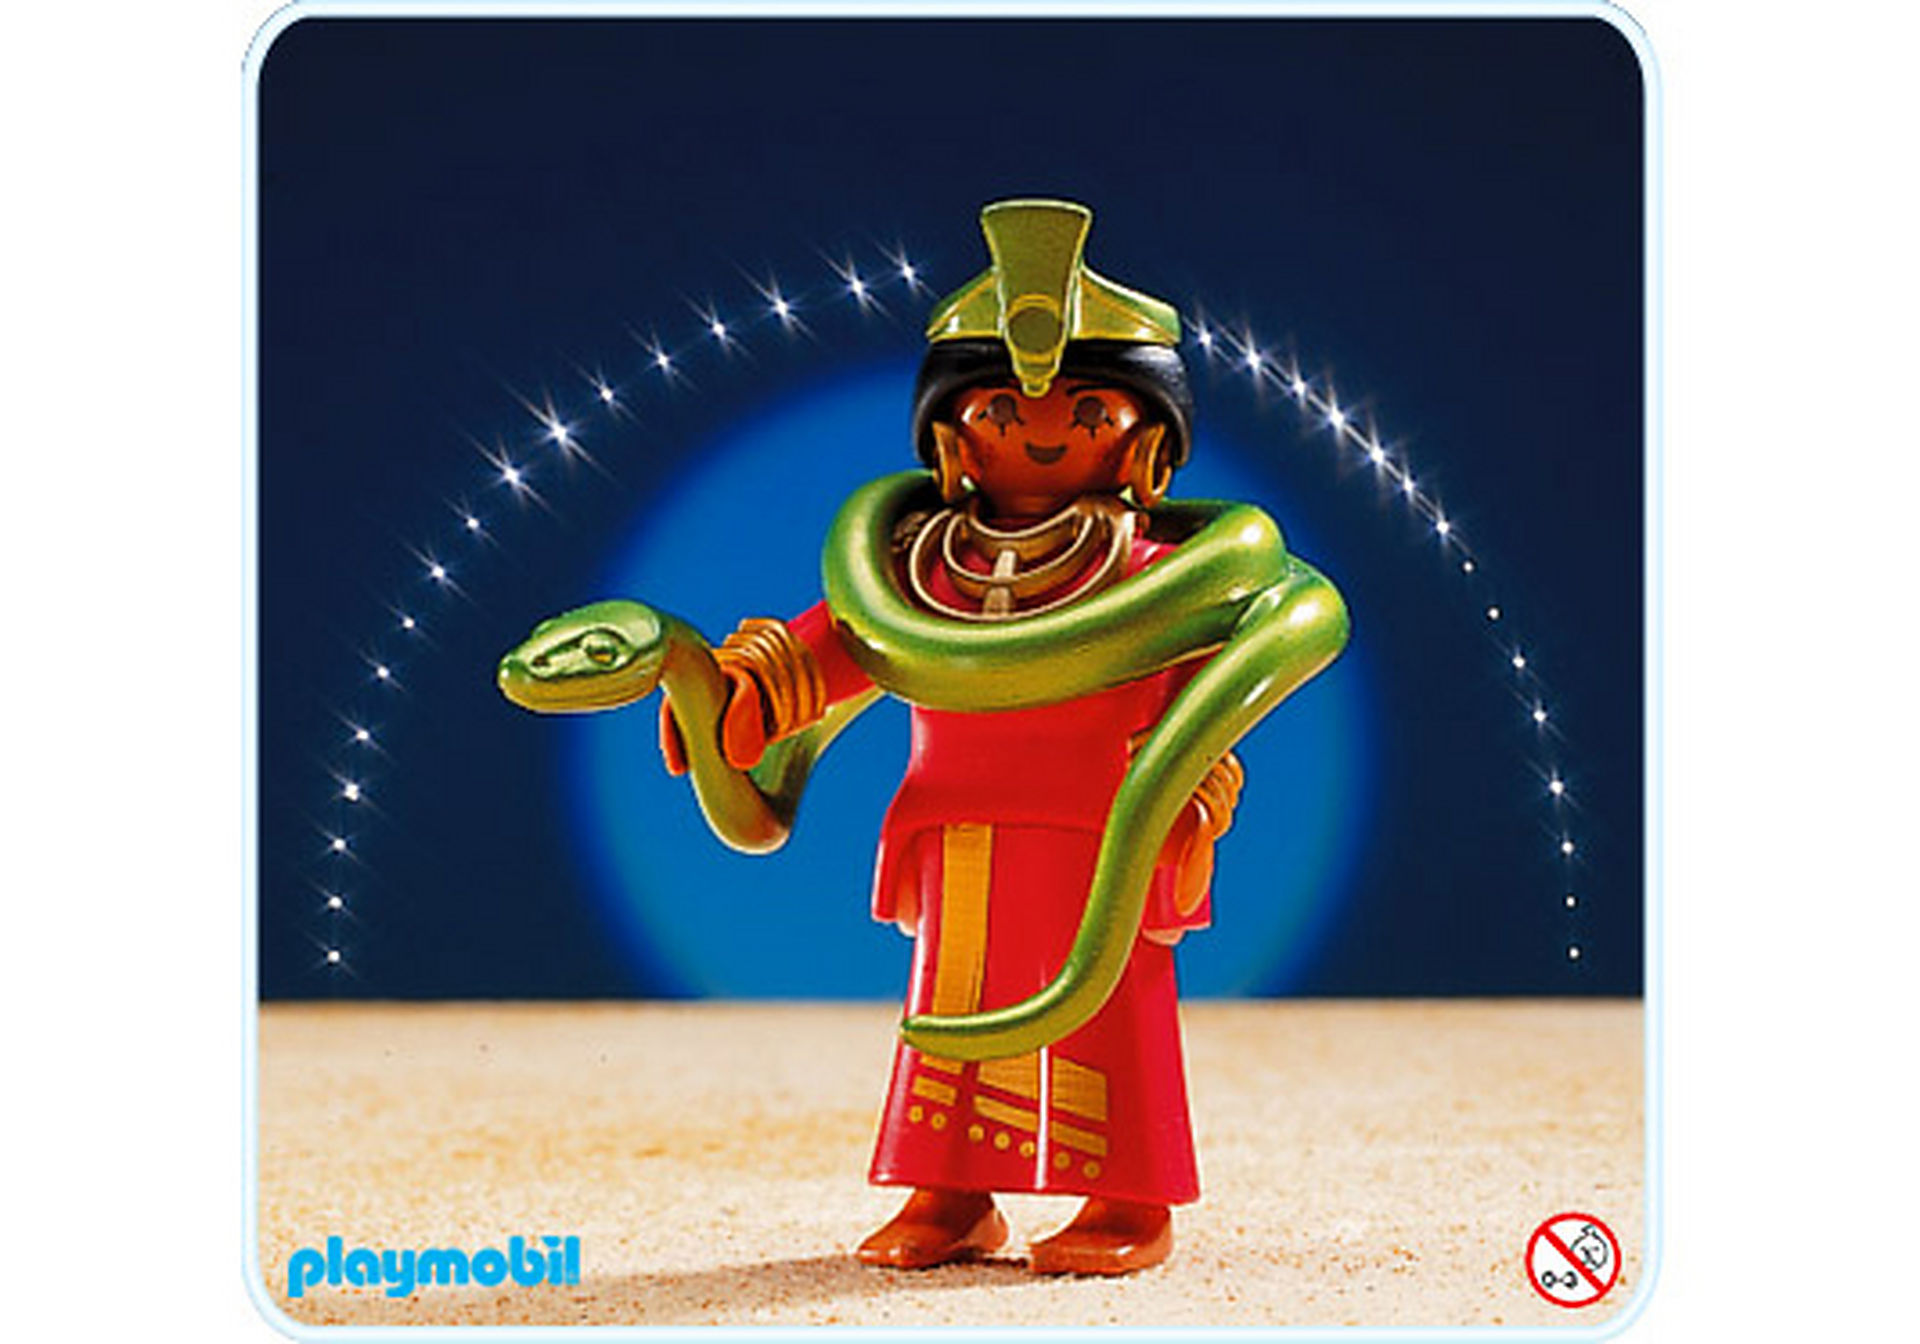 http://media.playmobil.com/i/playmobil/3737-A_product_detail/Danseuse au serpent